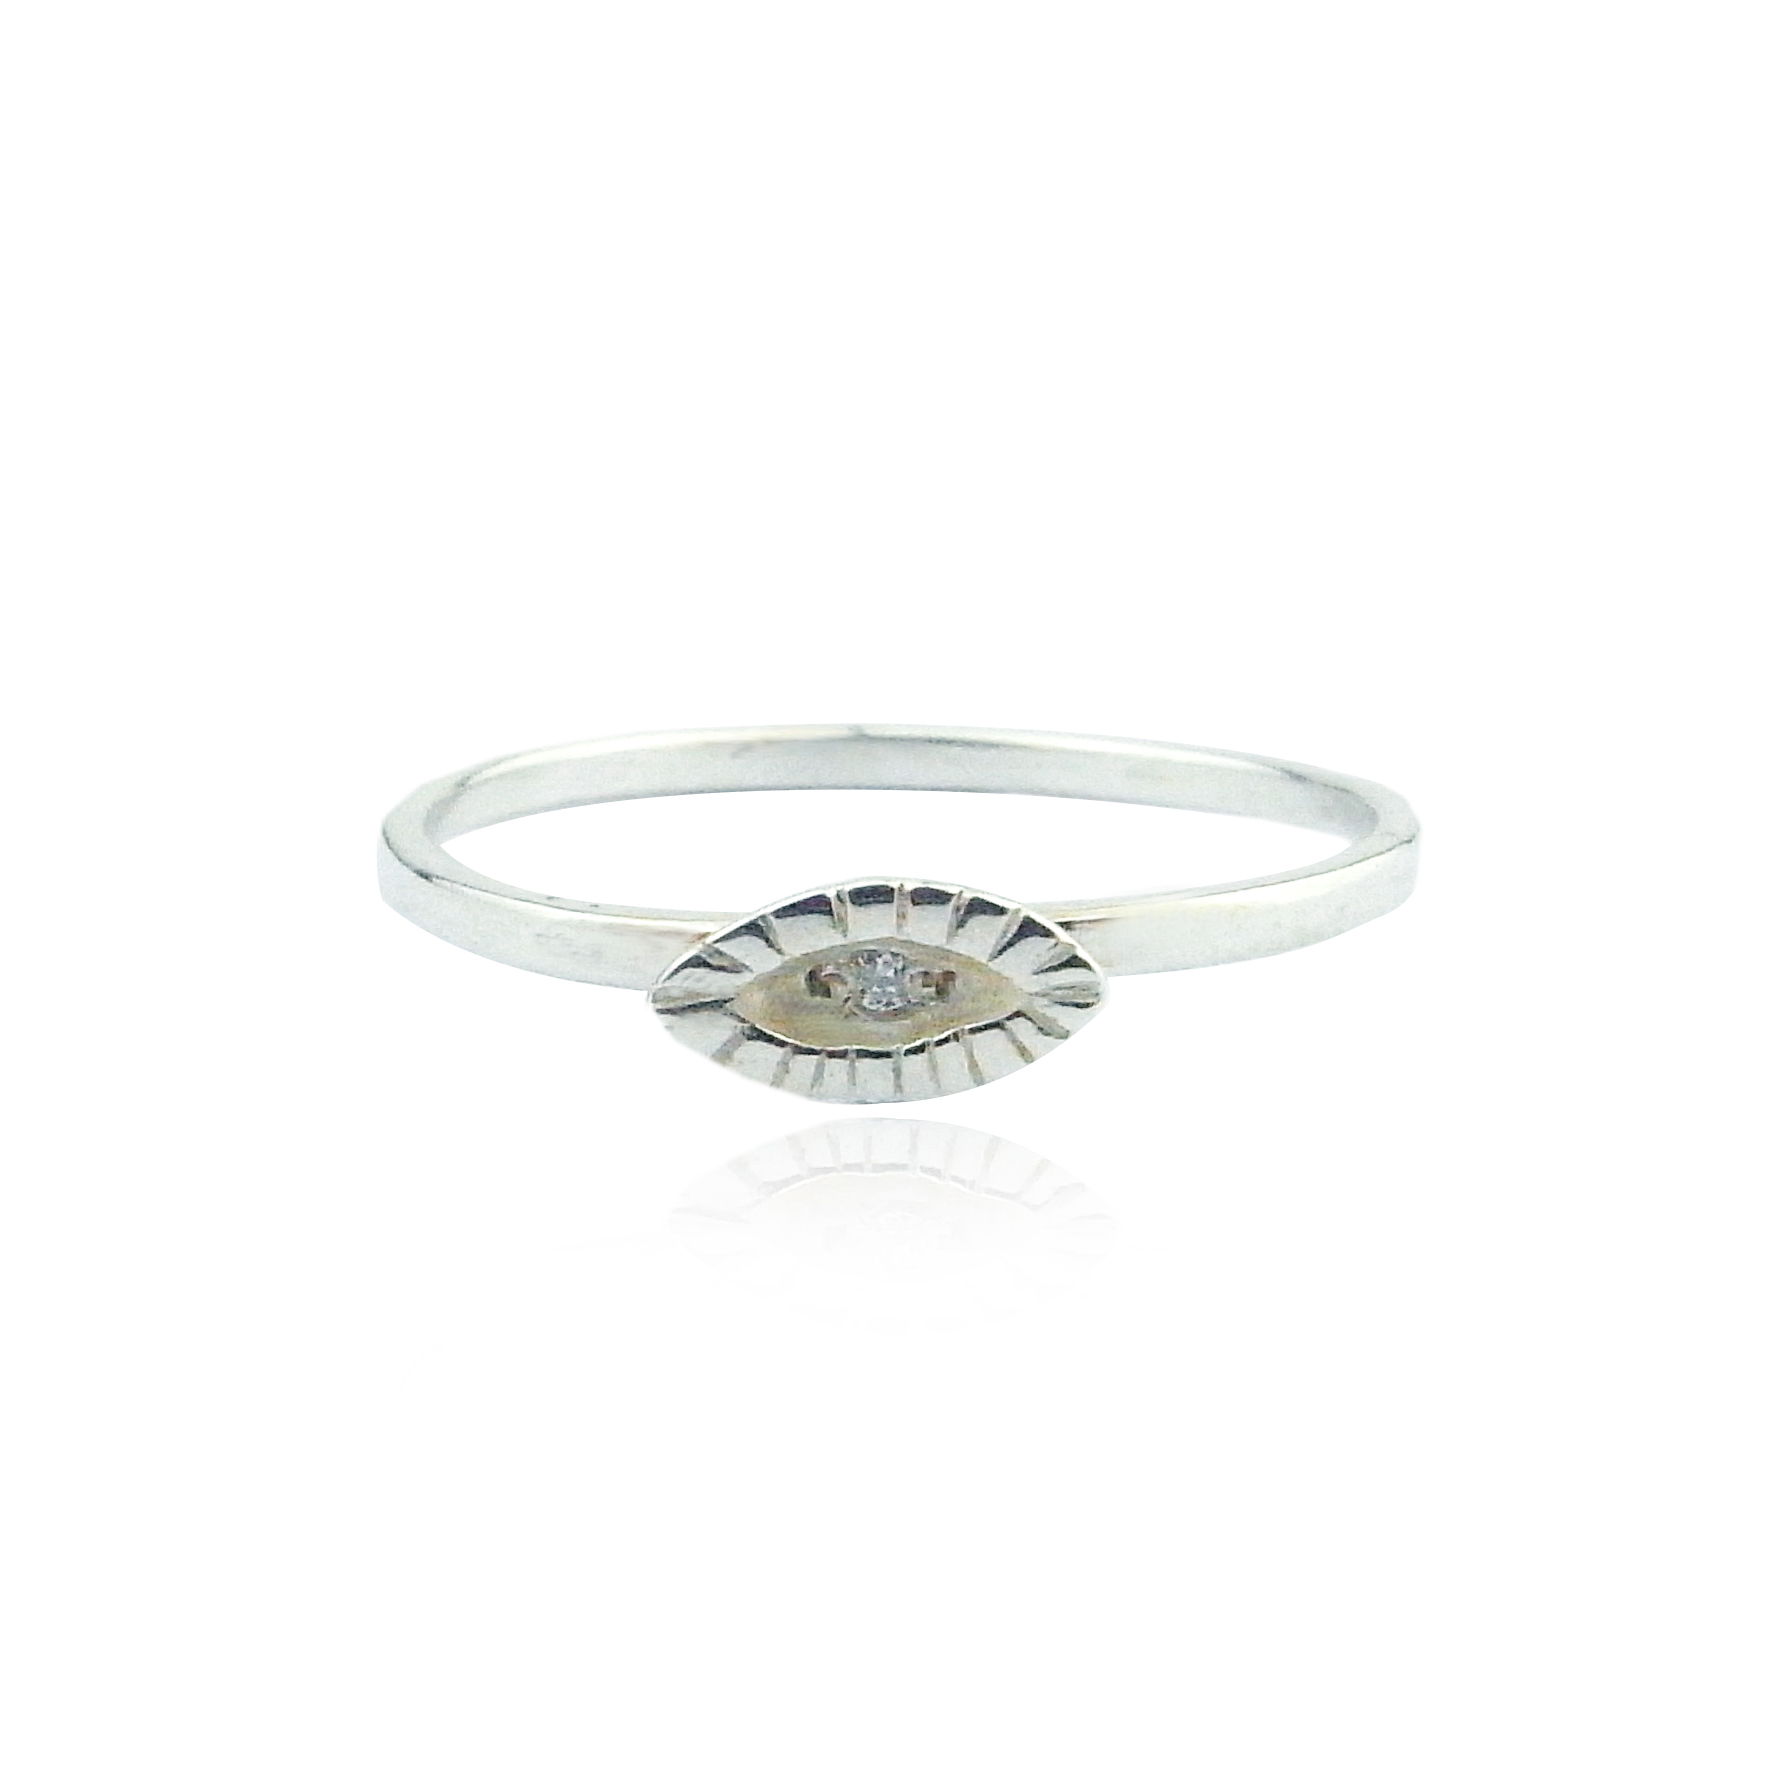 Momocraetura tiny eye diamond ring silver.jpg